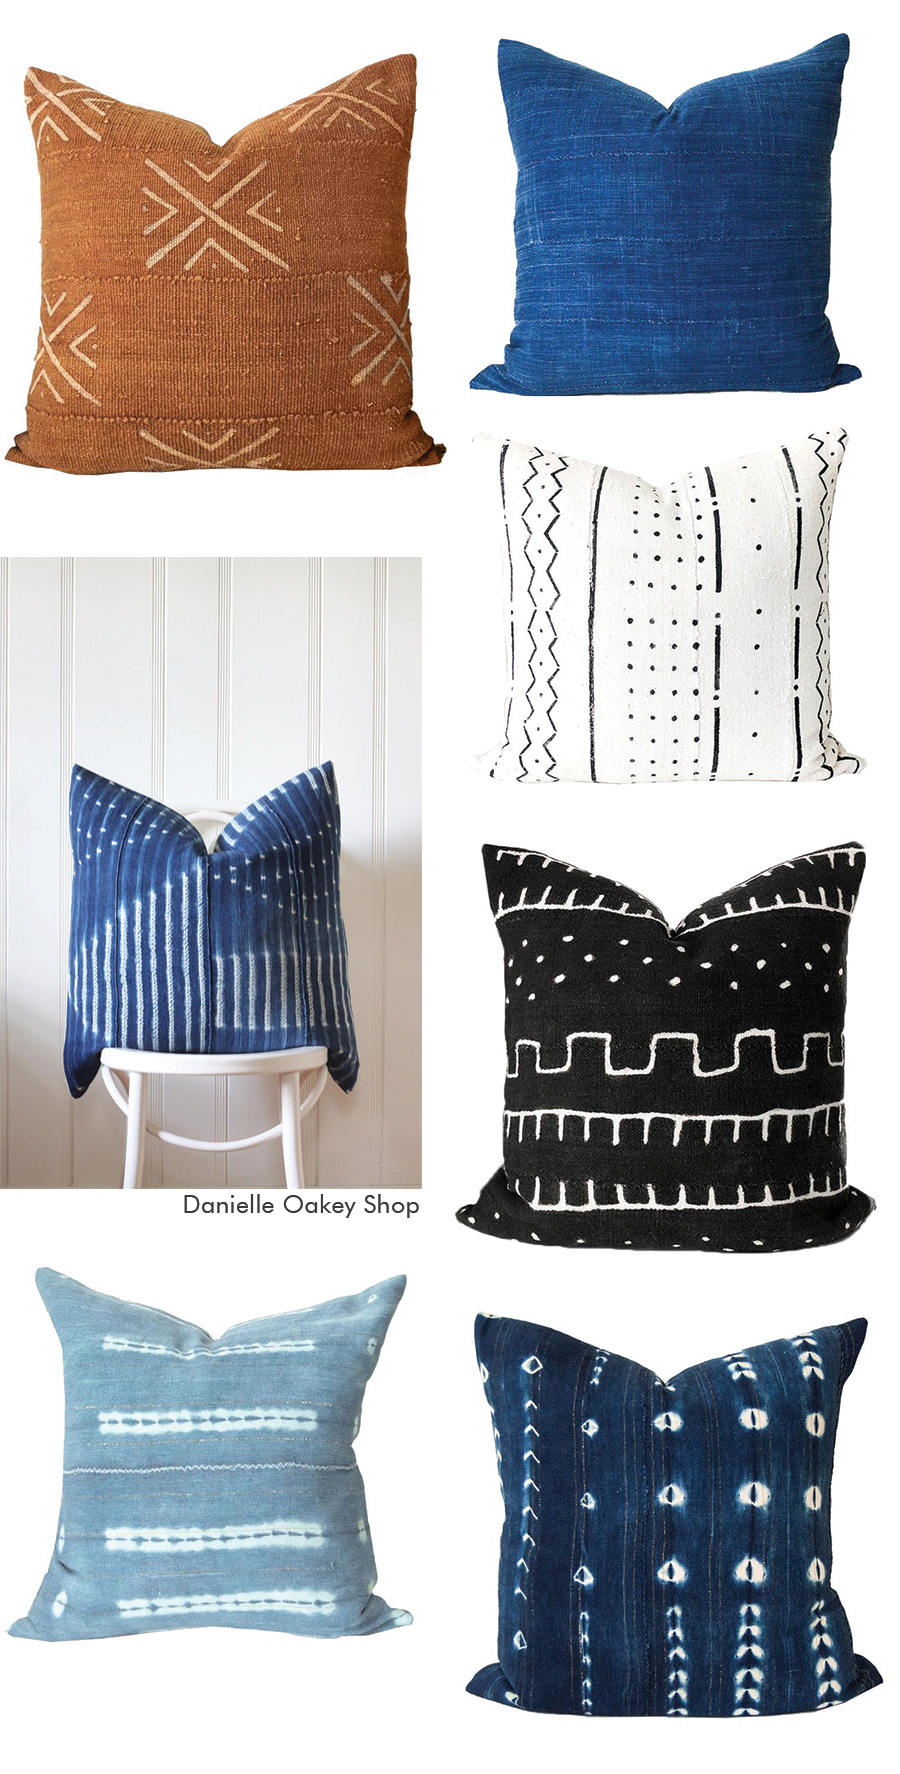 boho_decor_pillows.jpg